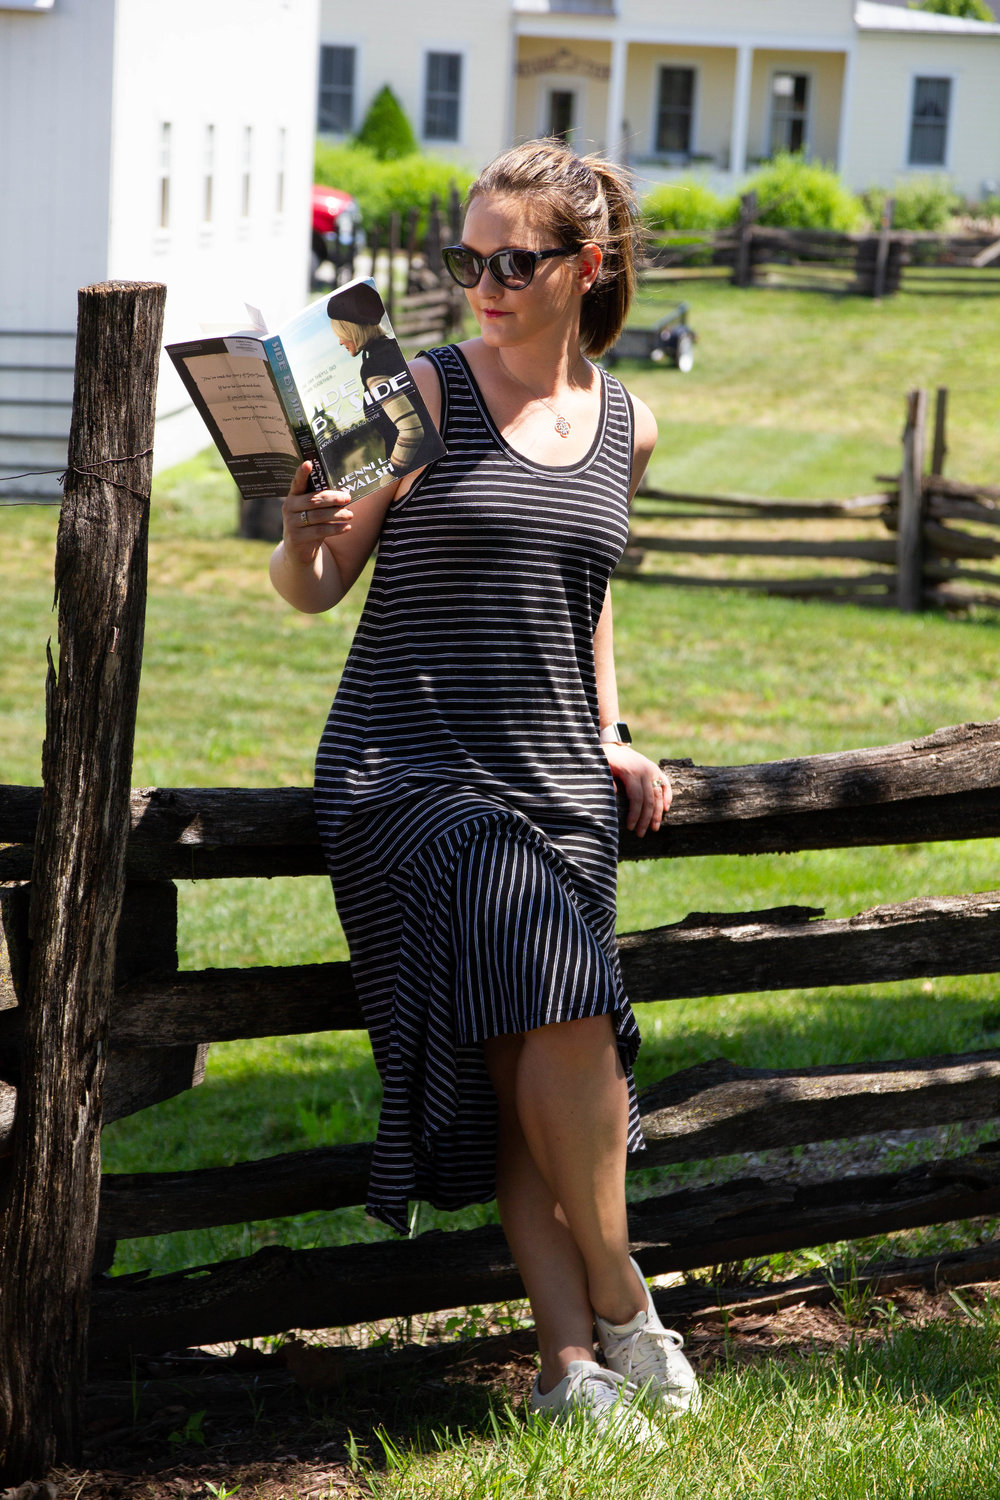 Reading Side by Side by Jenni L Walsh at GlenMark Farms